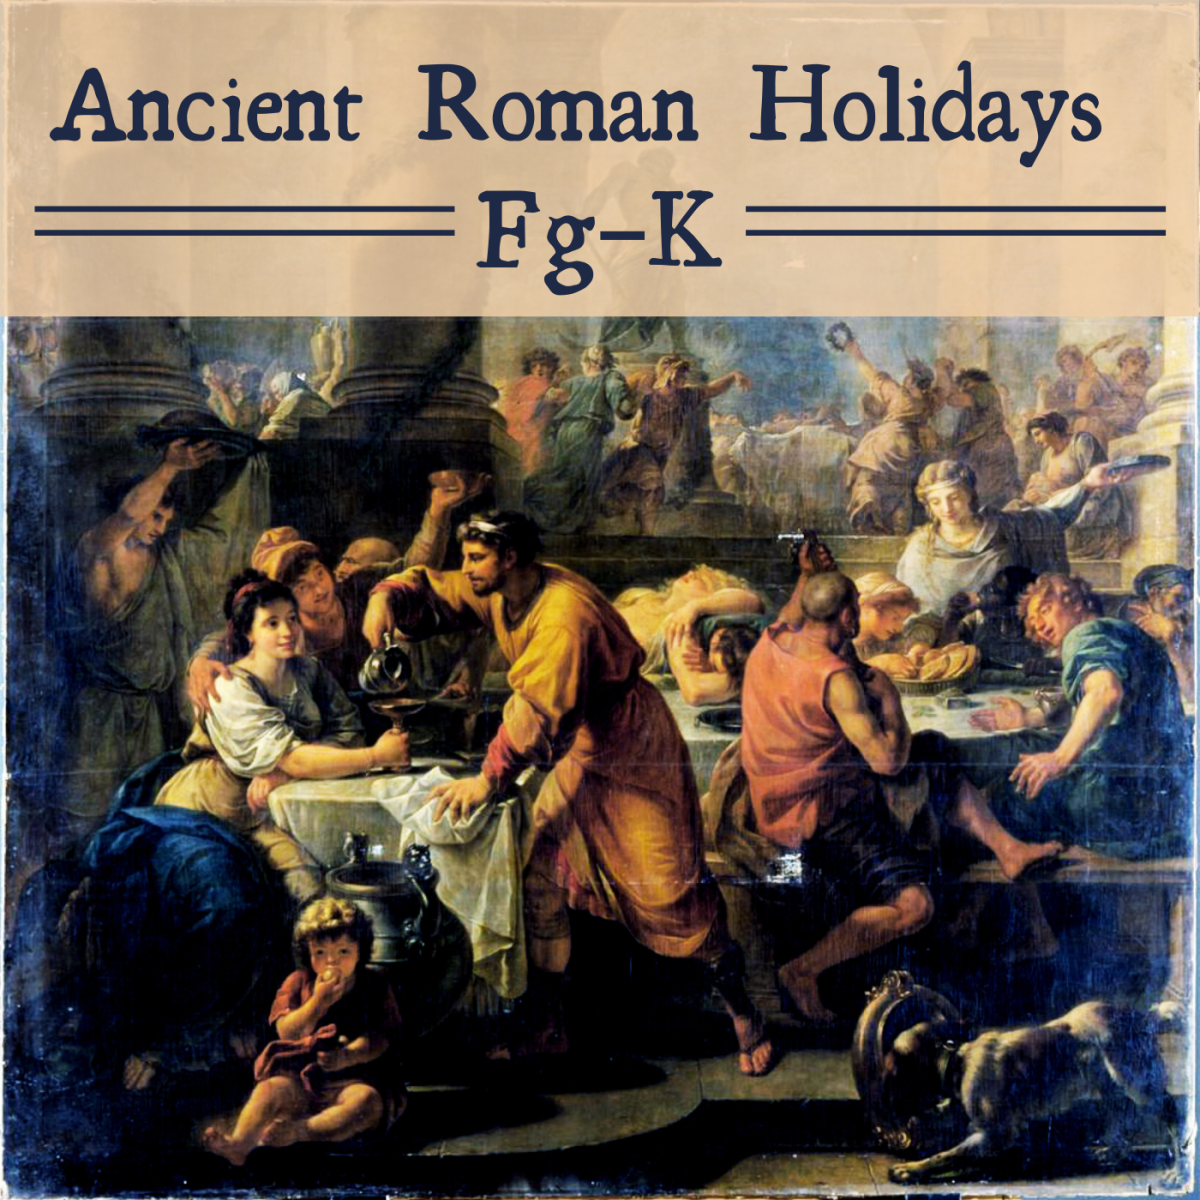 Ancient Roman Festivals, Celebrations and Holidays (Fg–K)